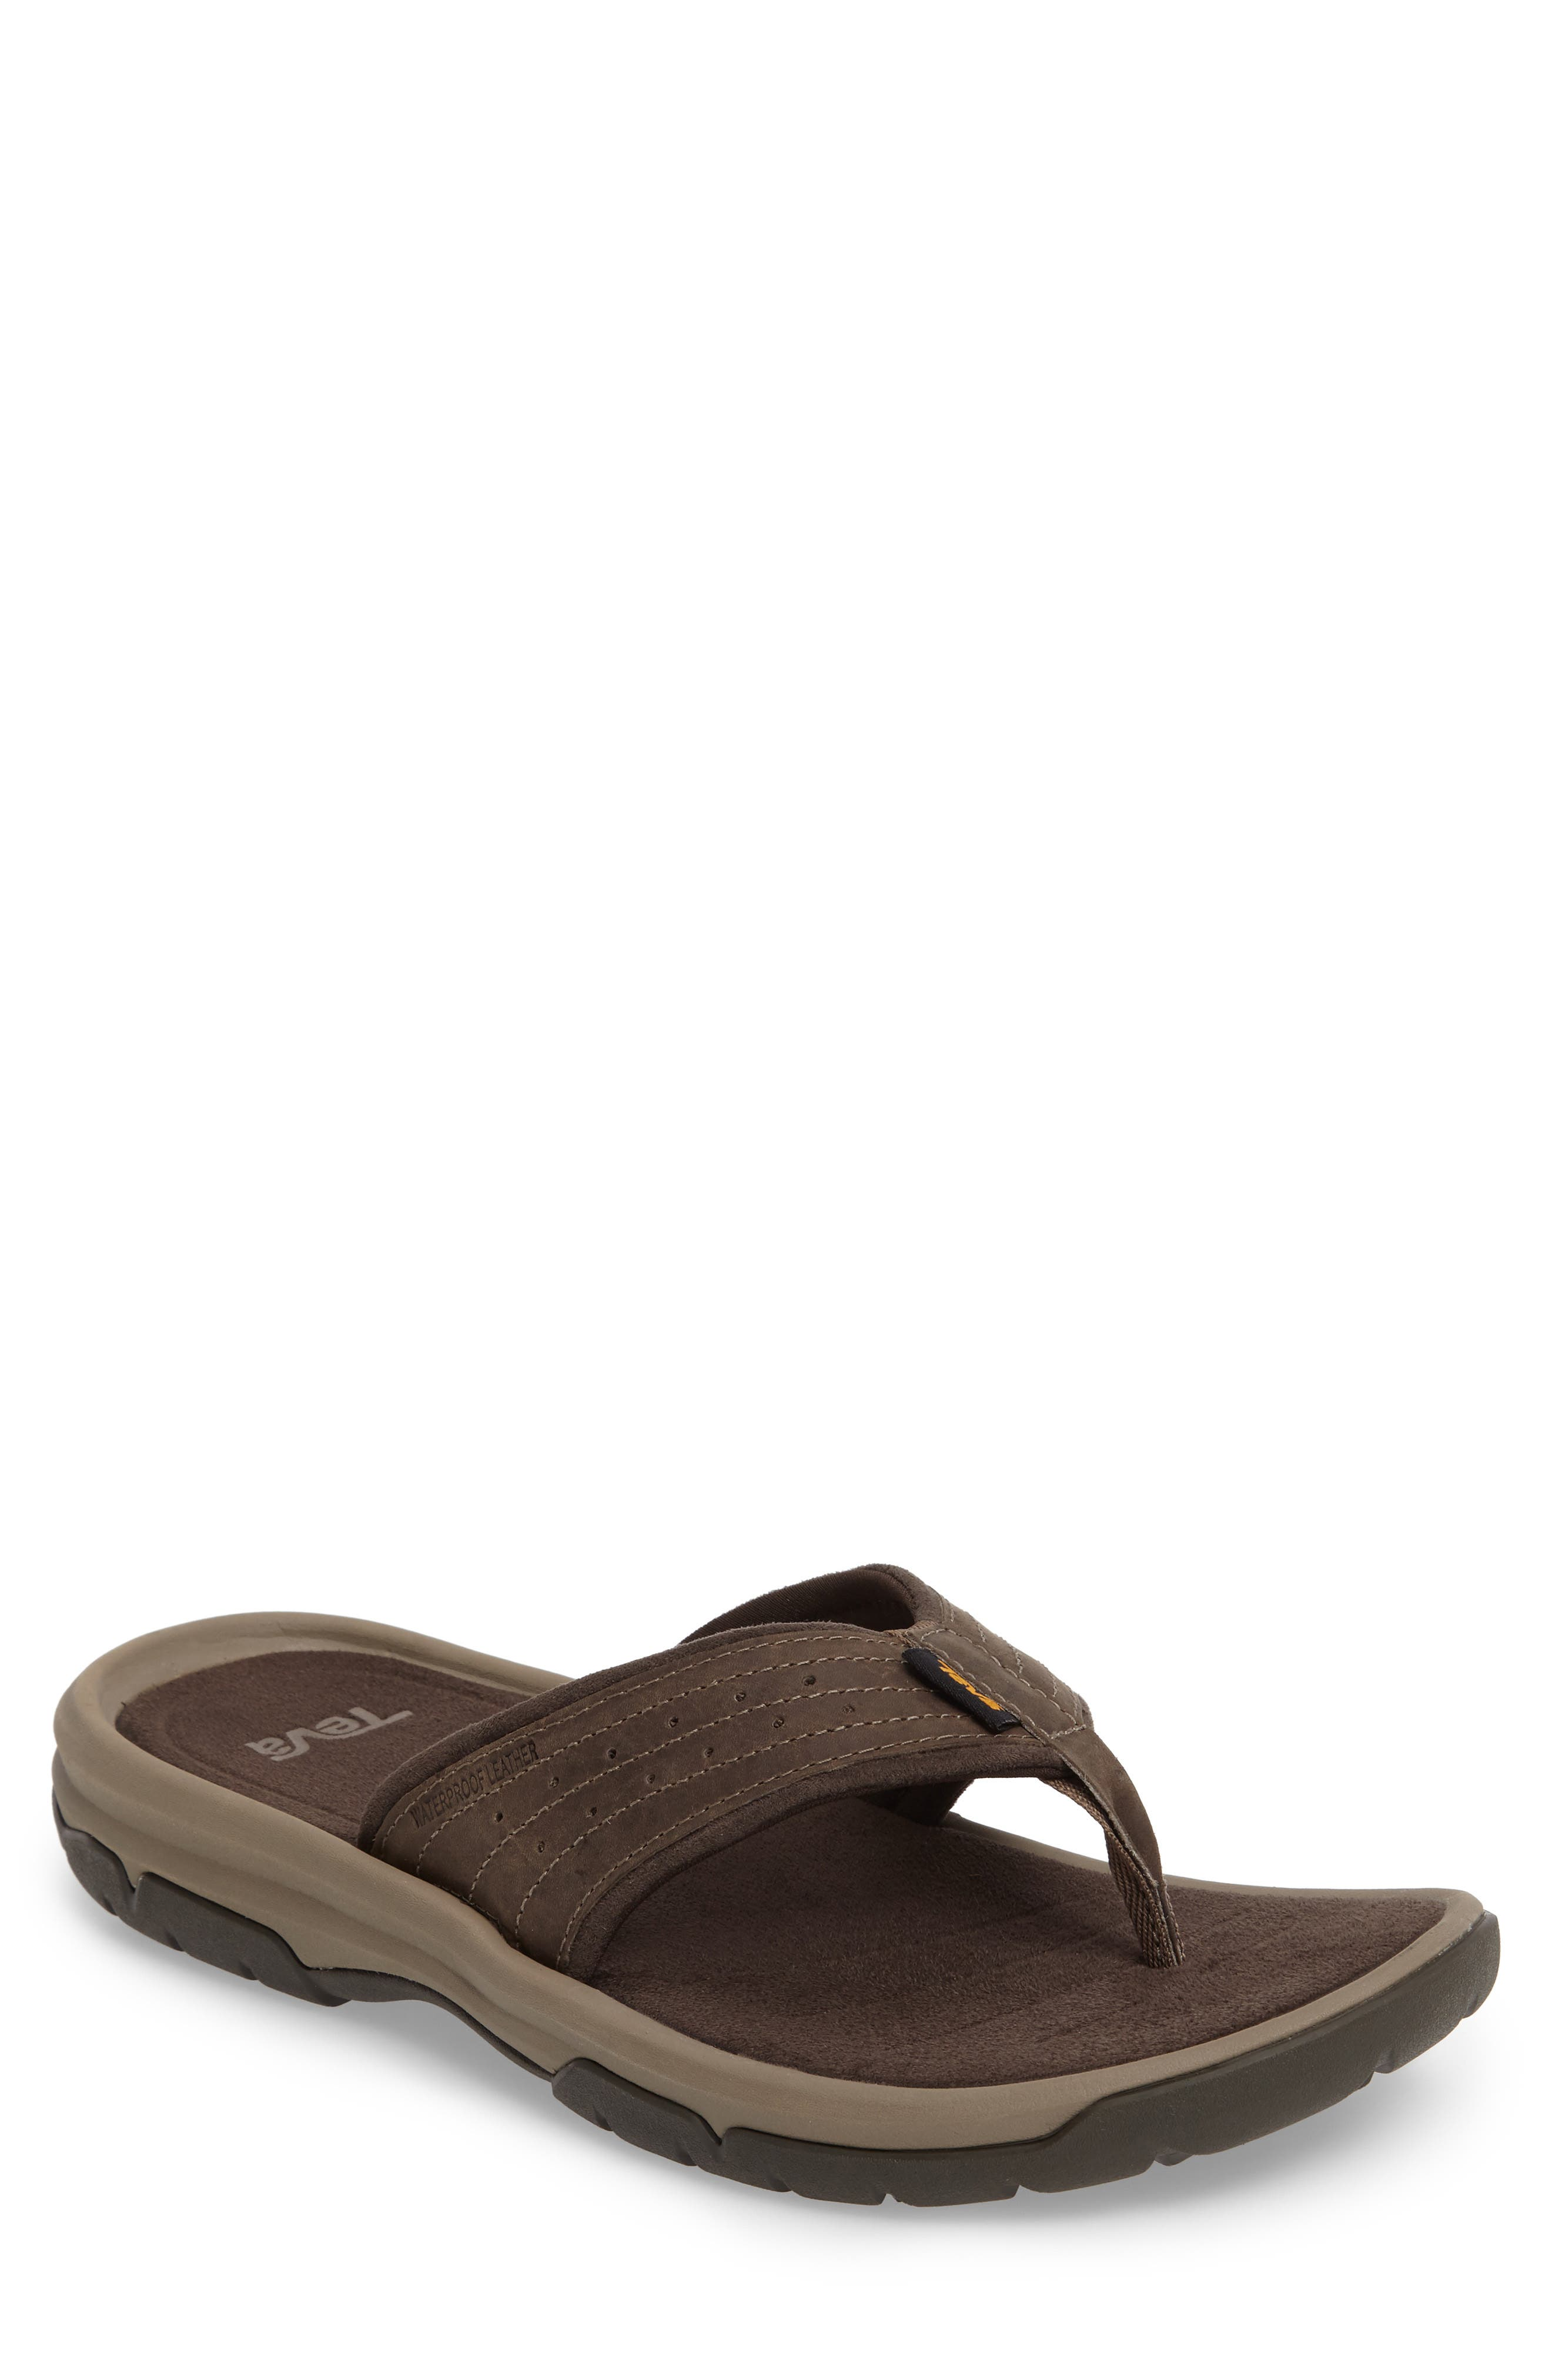 TEVA Langdon Flip Flop, Main, color, WALNUT